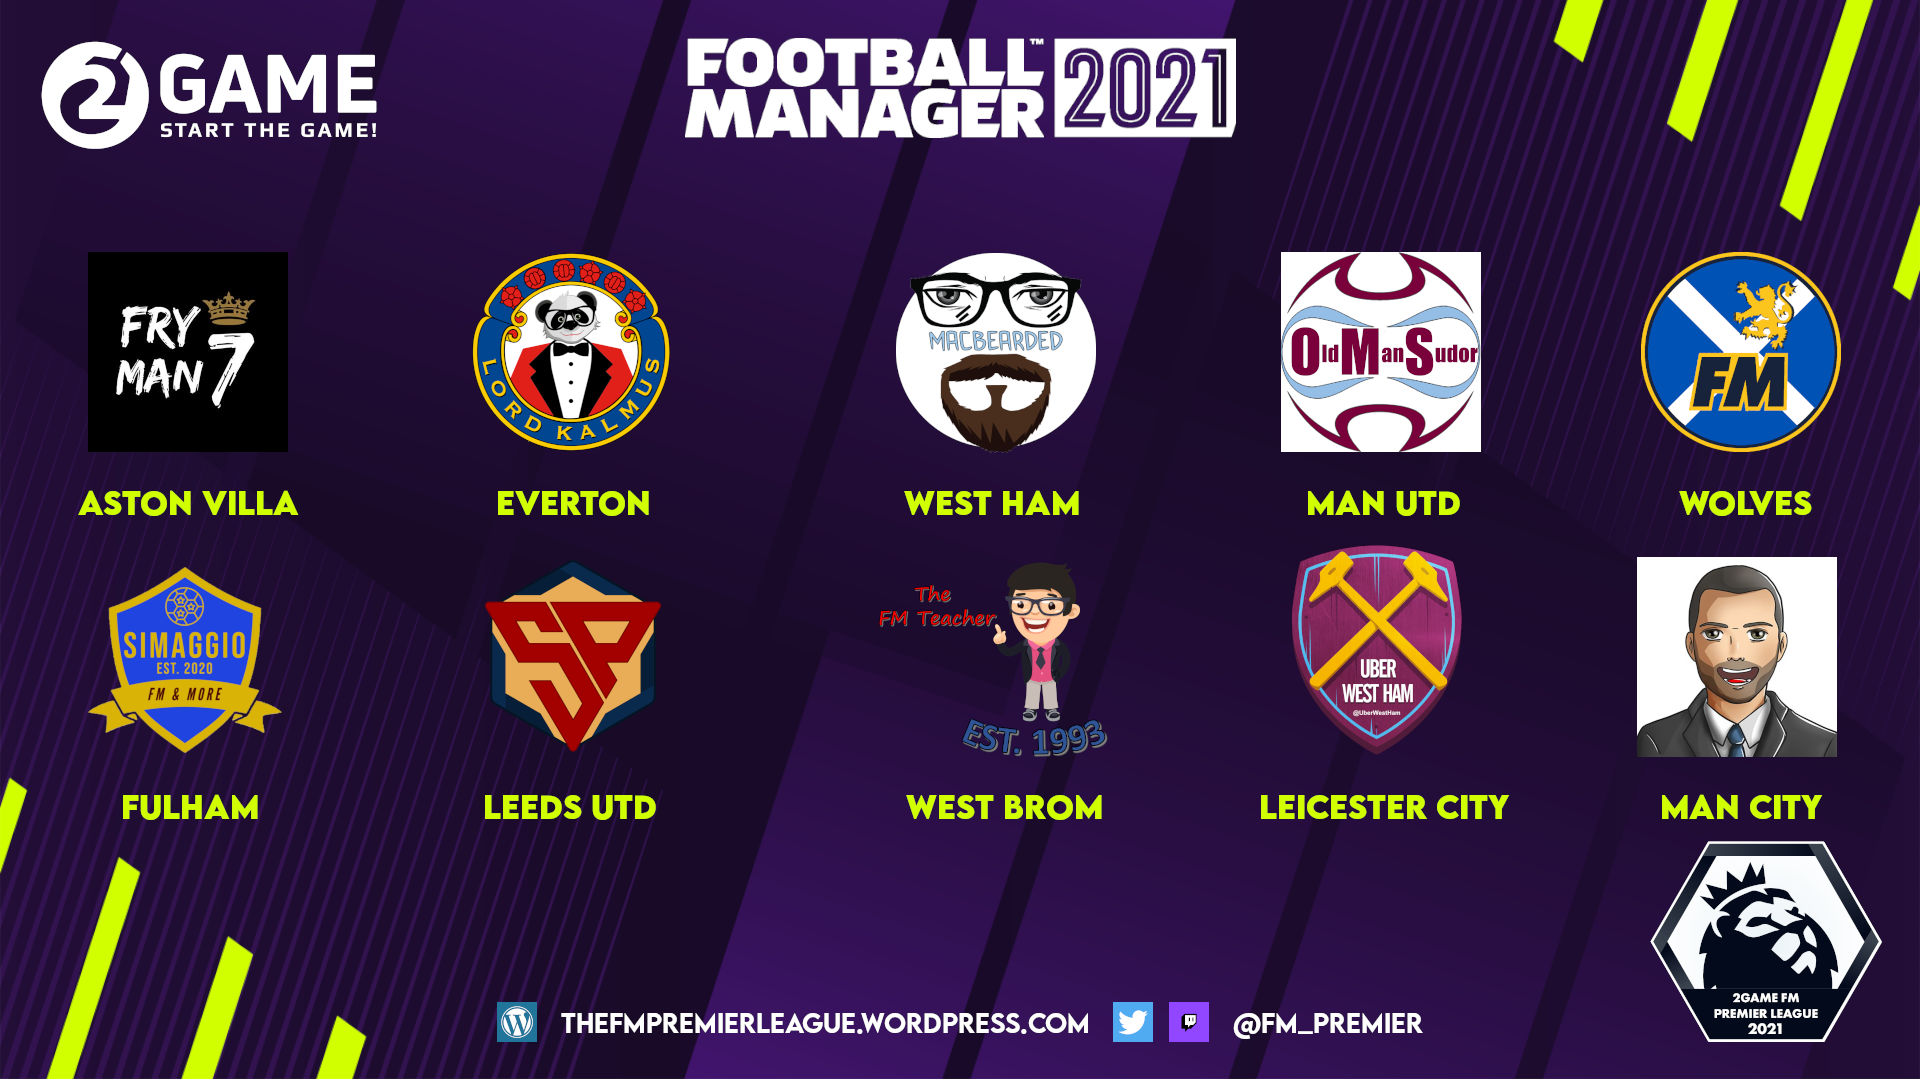 FMPL_MANAGERS_OVERVIEW_CLUBS_2.png